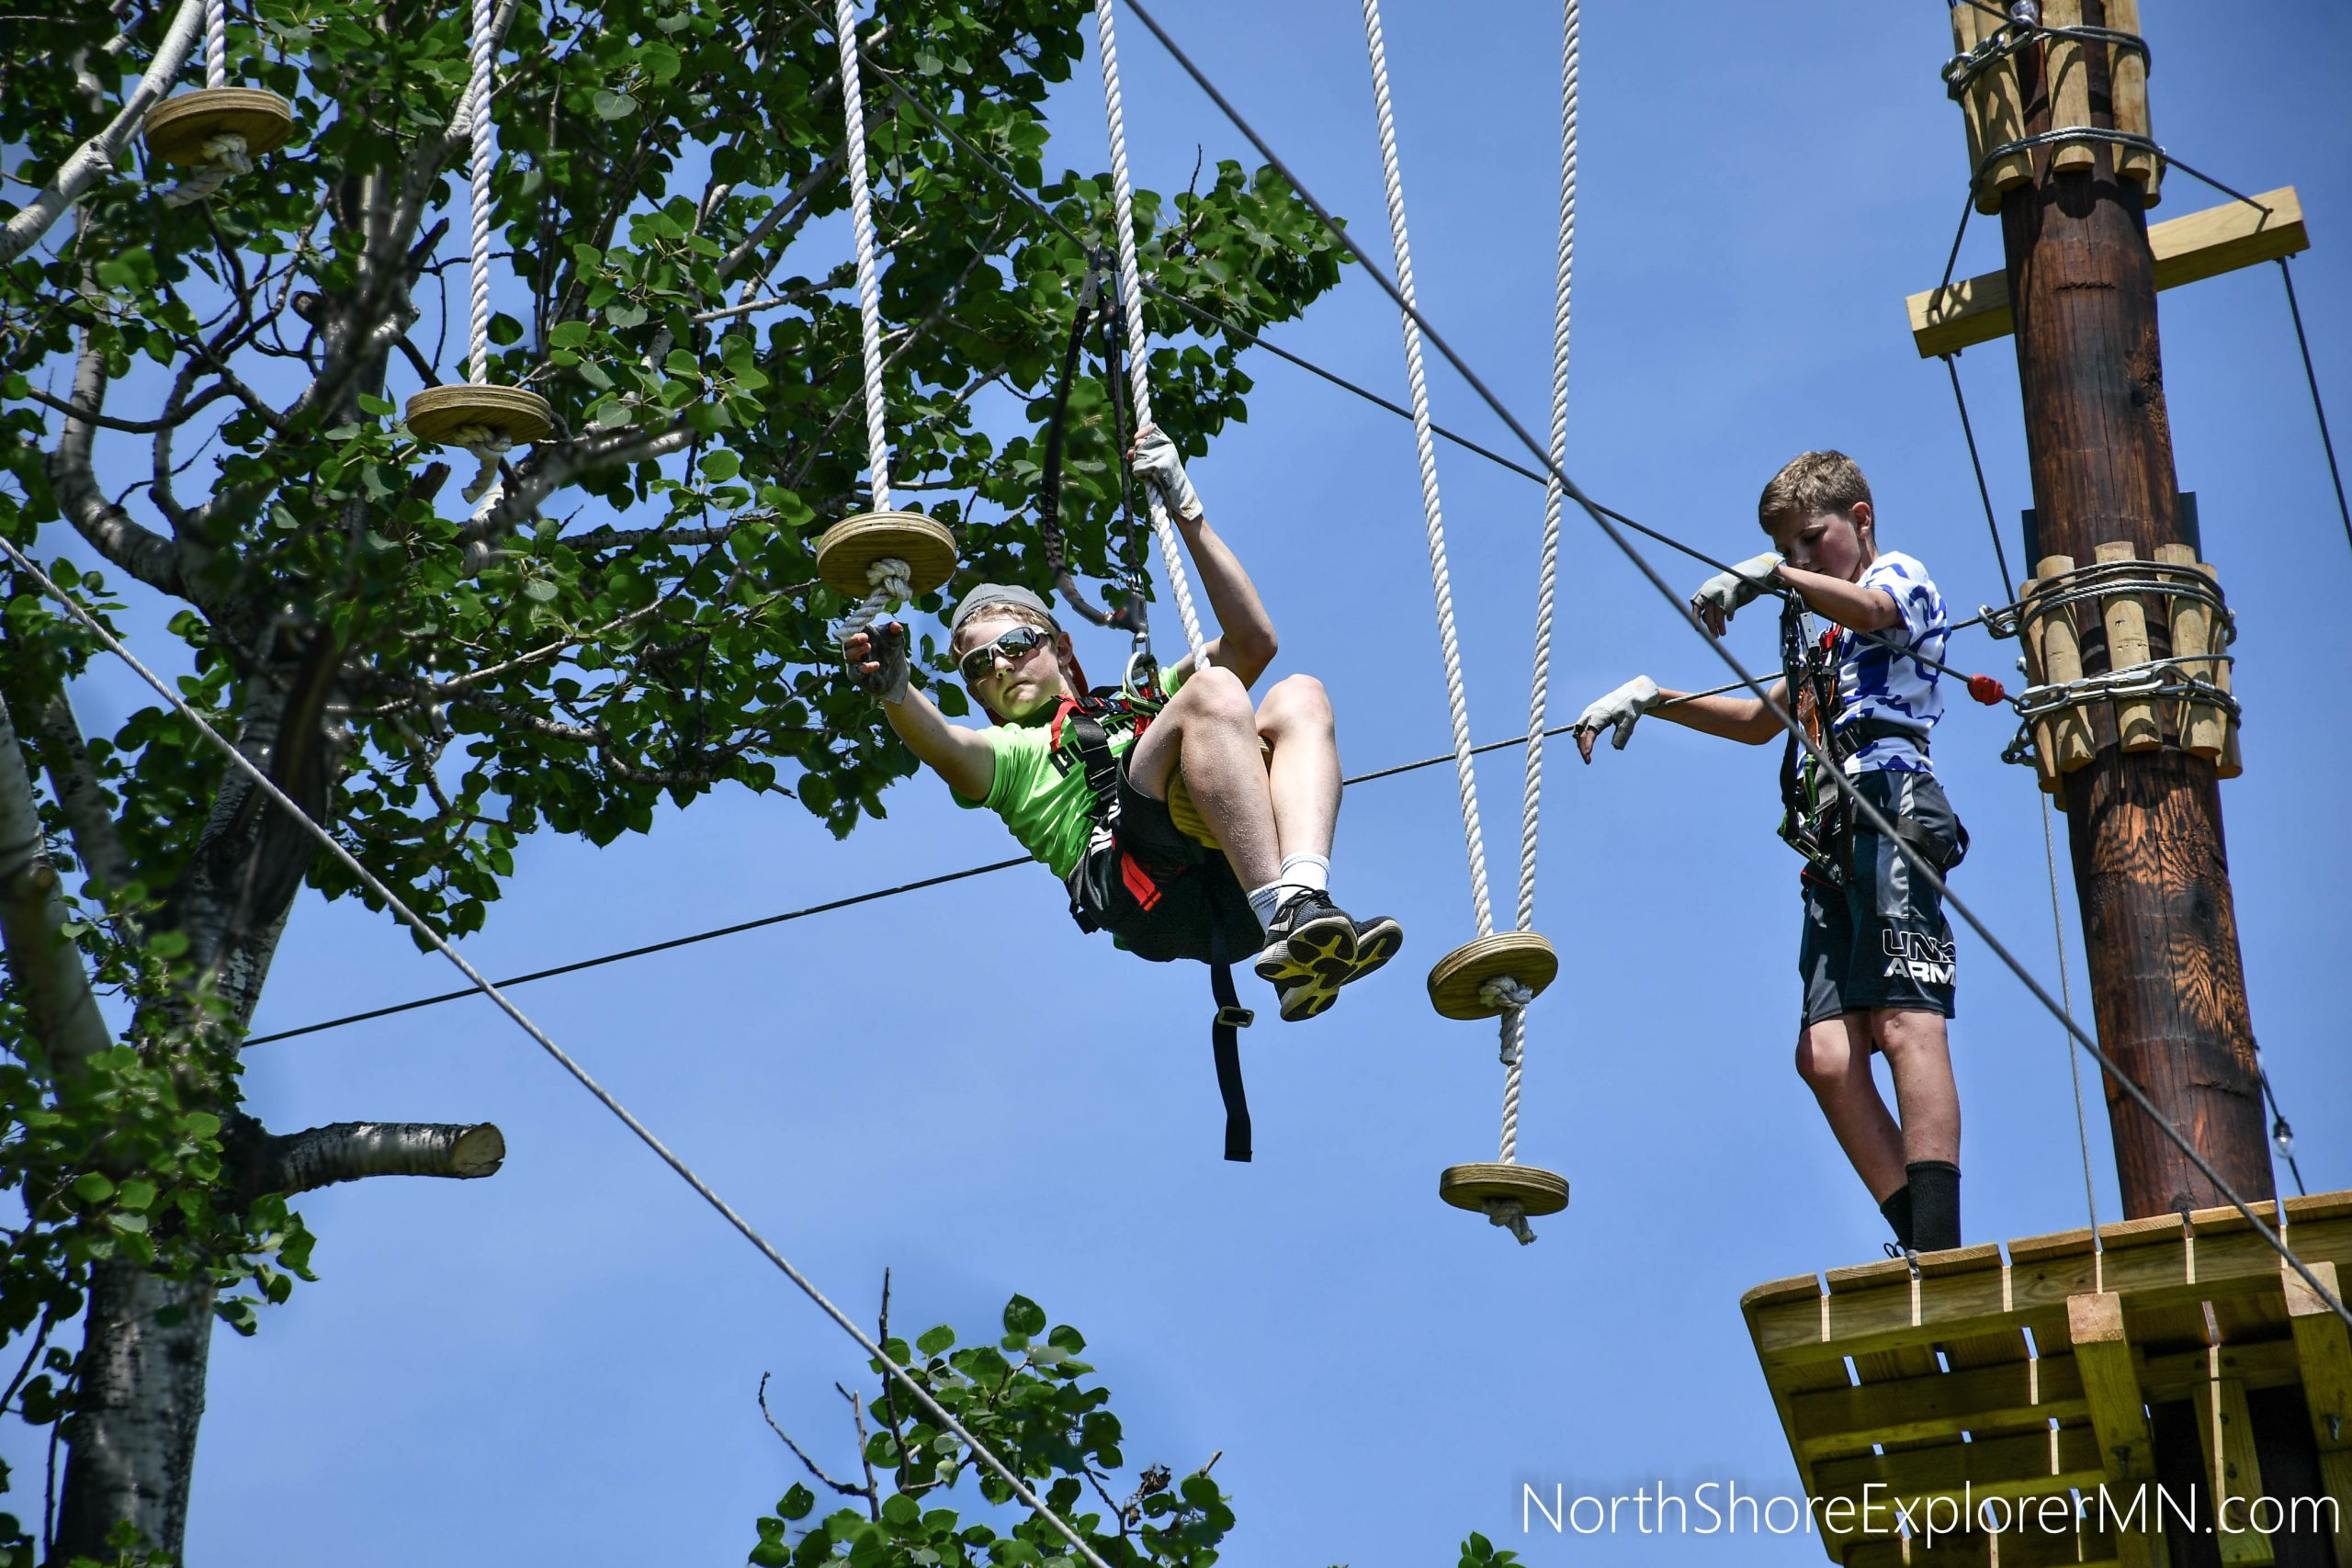 Conquer the bouncy flying rings!